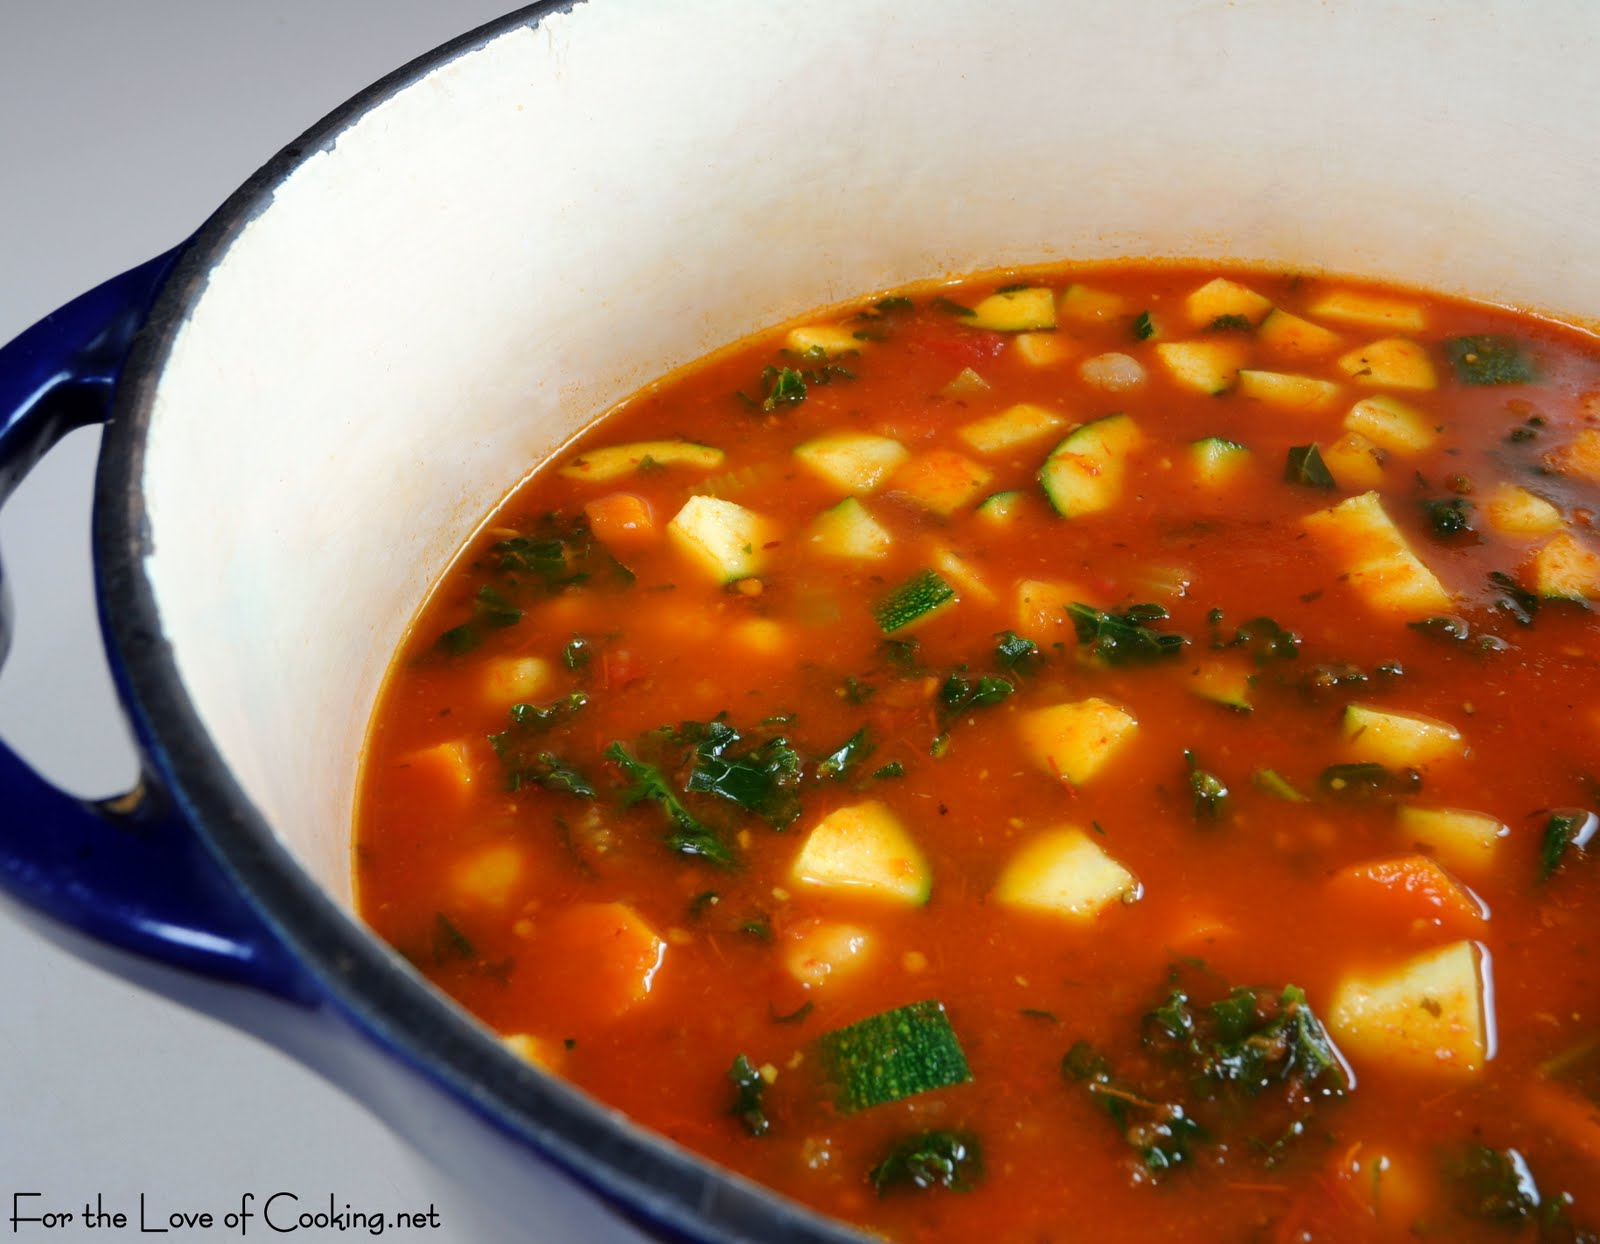 Roasted Tomato and Vegetable Soup | For the Love of Cooking